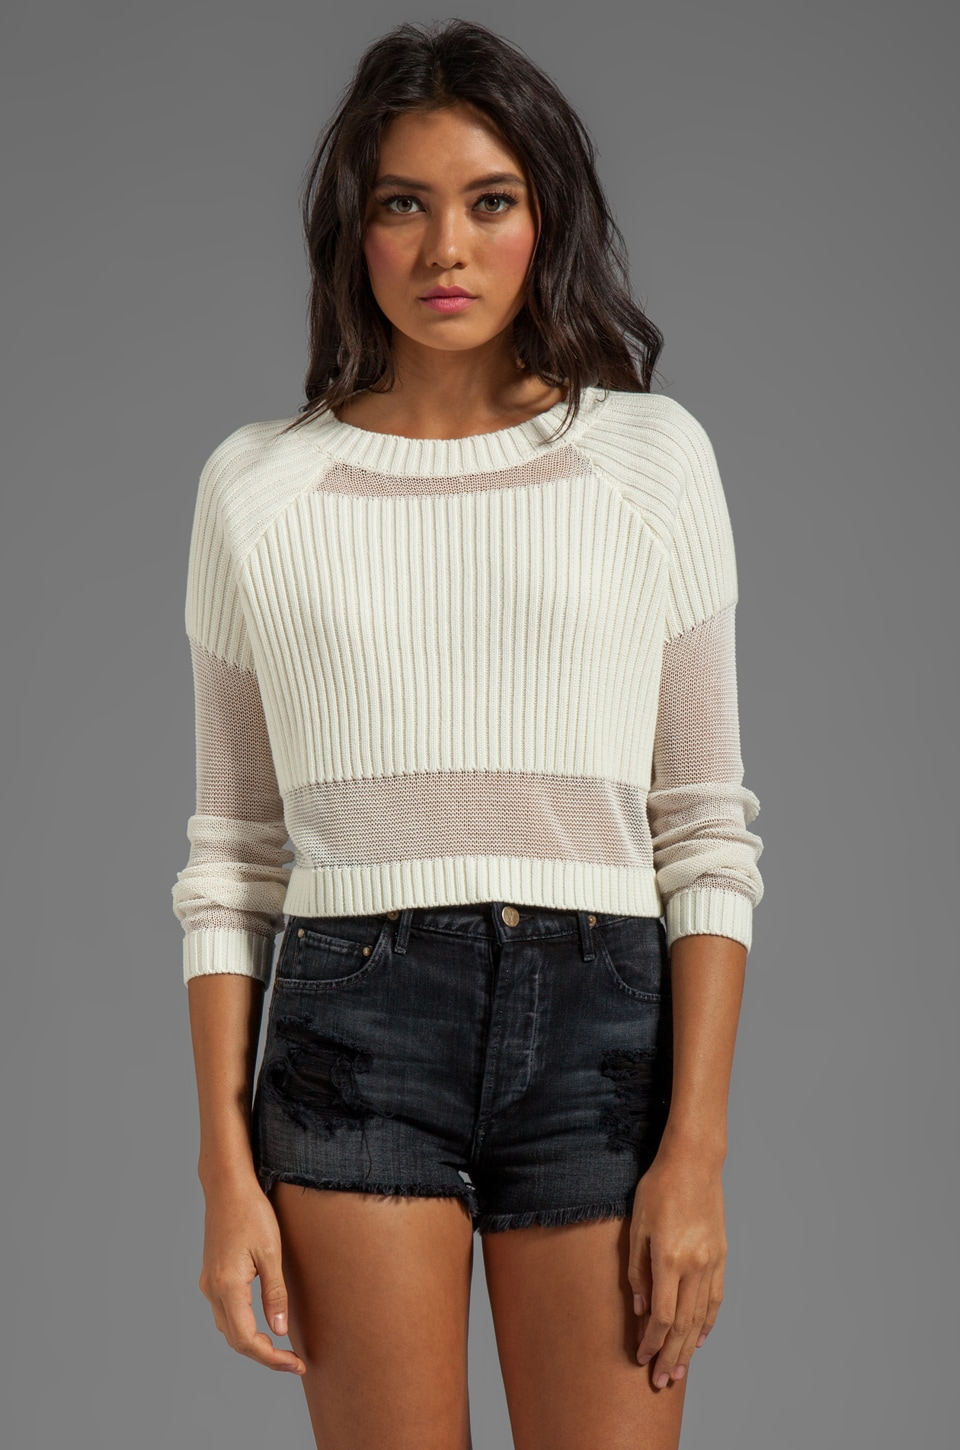 Somedays Lovin Parallels Block Knit Crop Sweater in White